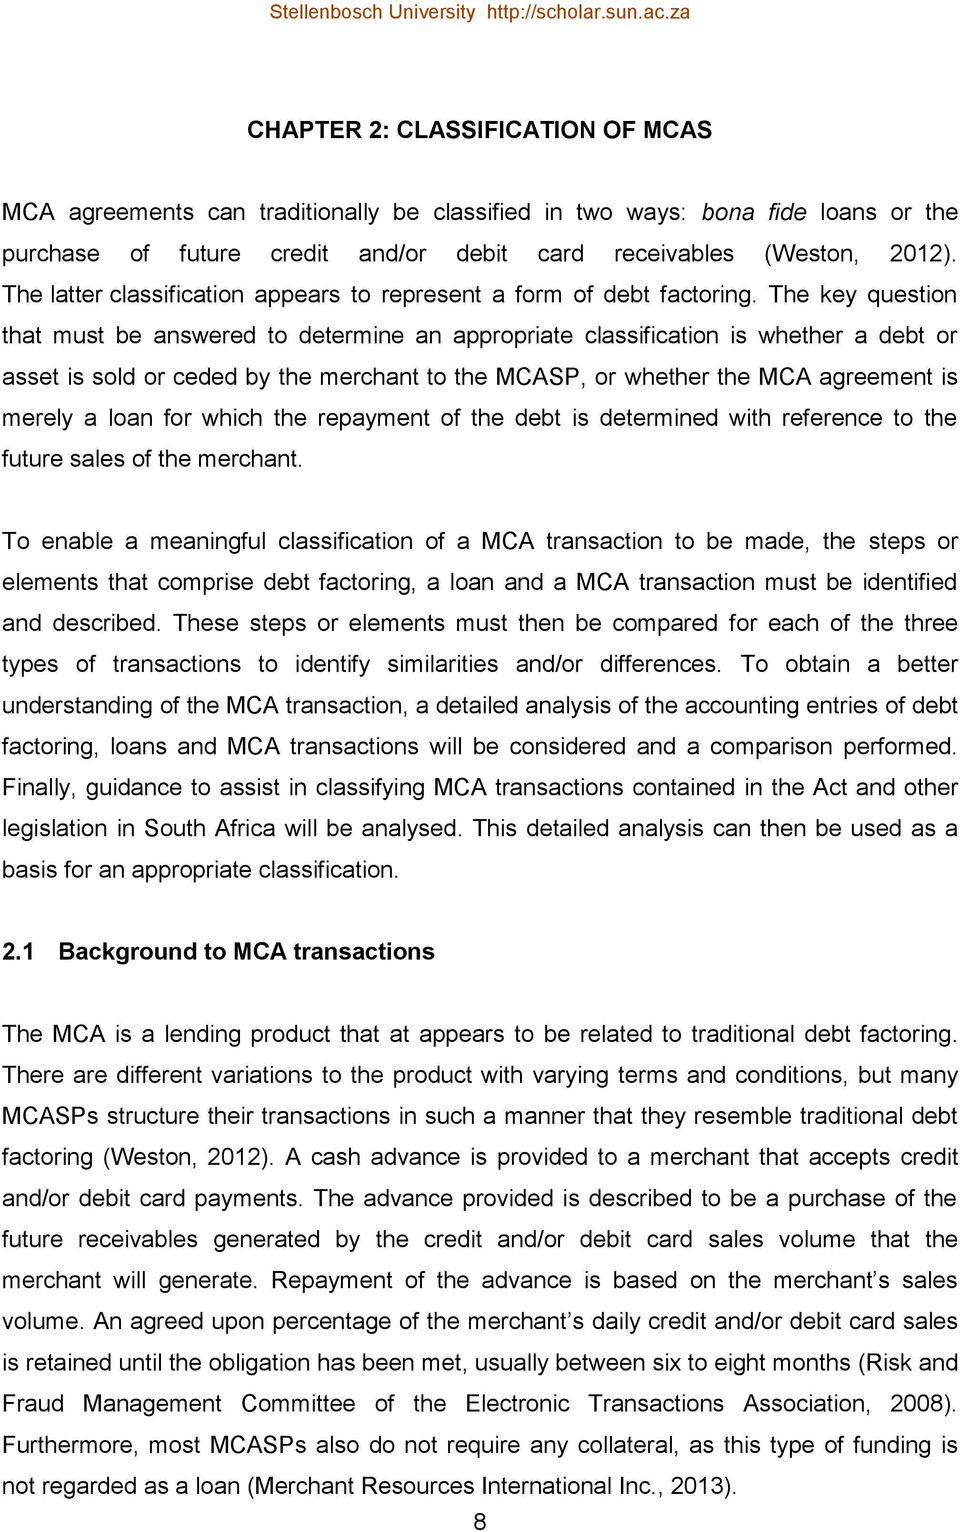 The key question that must be answered to determine an appropriate classification is whether a debt or asset is sold or ceded by the merchant to the MCASP, or whether the MCA agreement is merely a